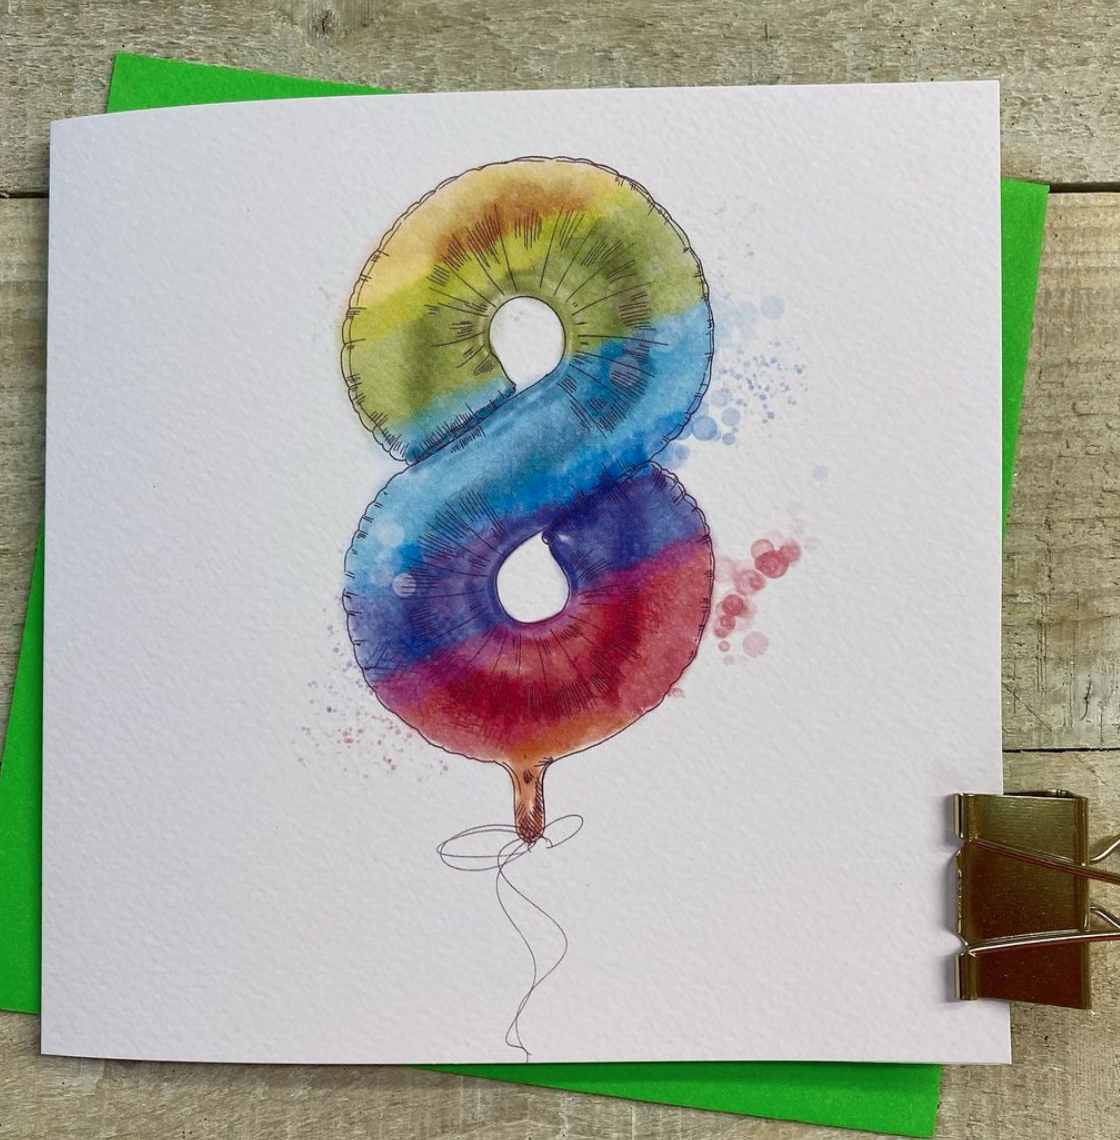 Above: An 'uplifting' design from White Cotton Cards' Rainbow Helium Balloons range.